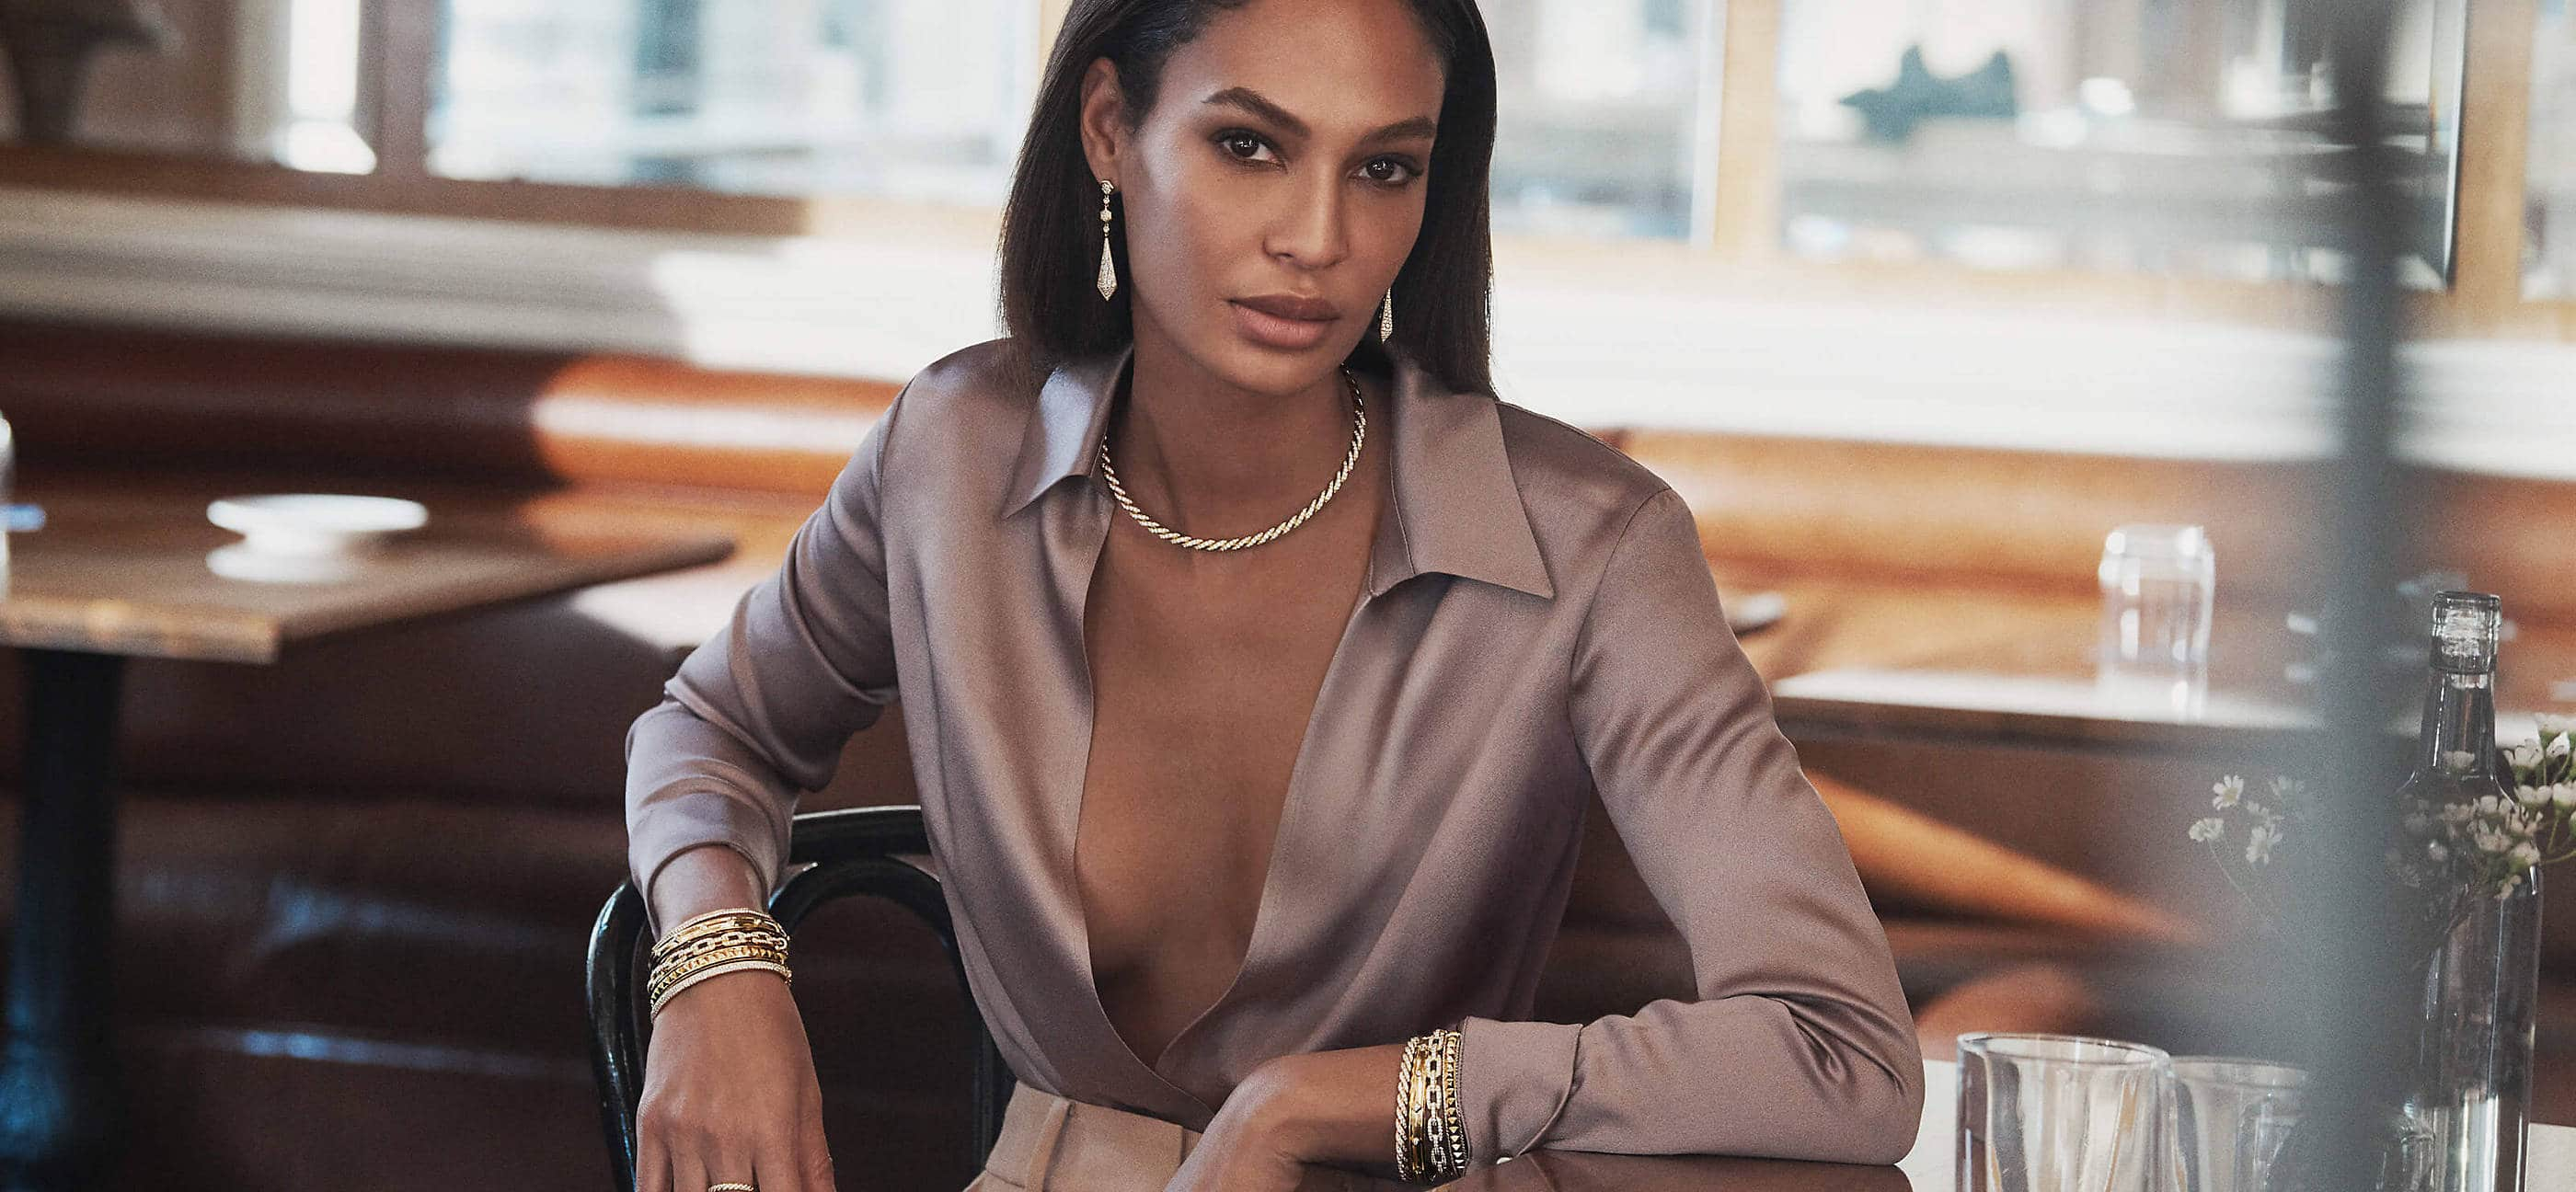 A color photo shows model Joan Smalls from the waist up sitting at a table in a sunlit restaurant near a window and brown leather banquettes. She's wearing a lilac-hued silk blouse that's open in the front and a pair of David Yurman earrings, a necklace and several bracelets stacked on both wrists. The jewelry is crafted from 18K yellow gold with or without pavé diamonds.